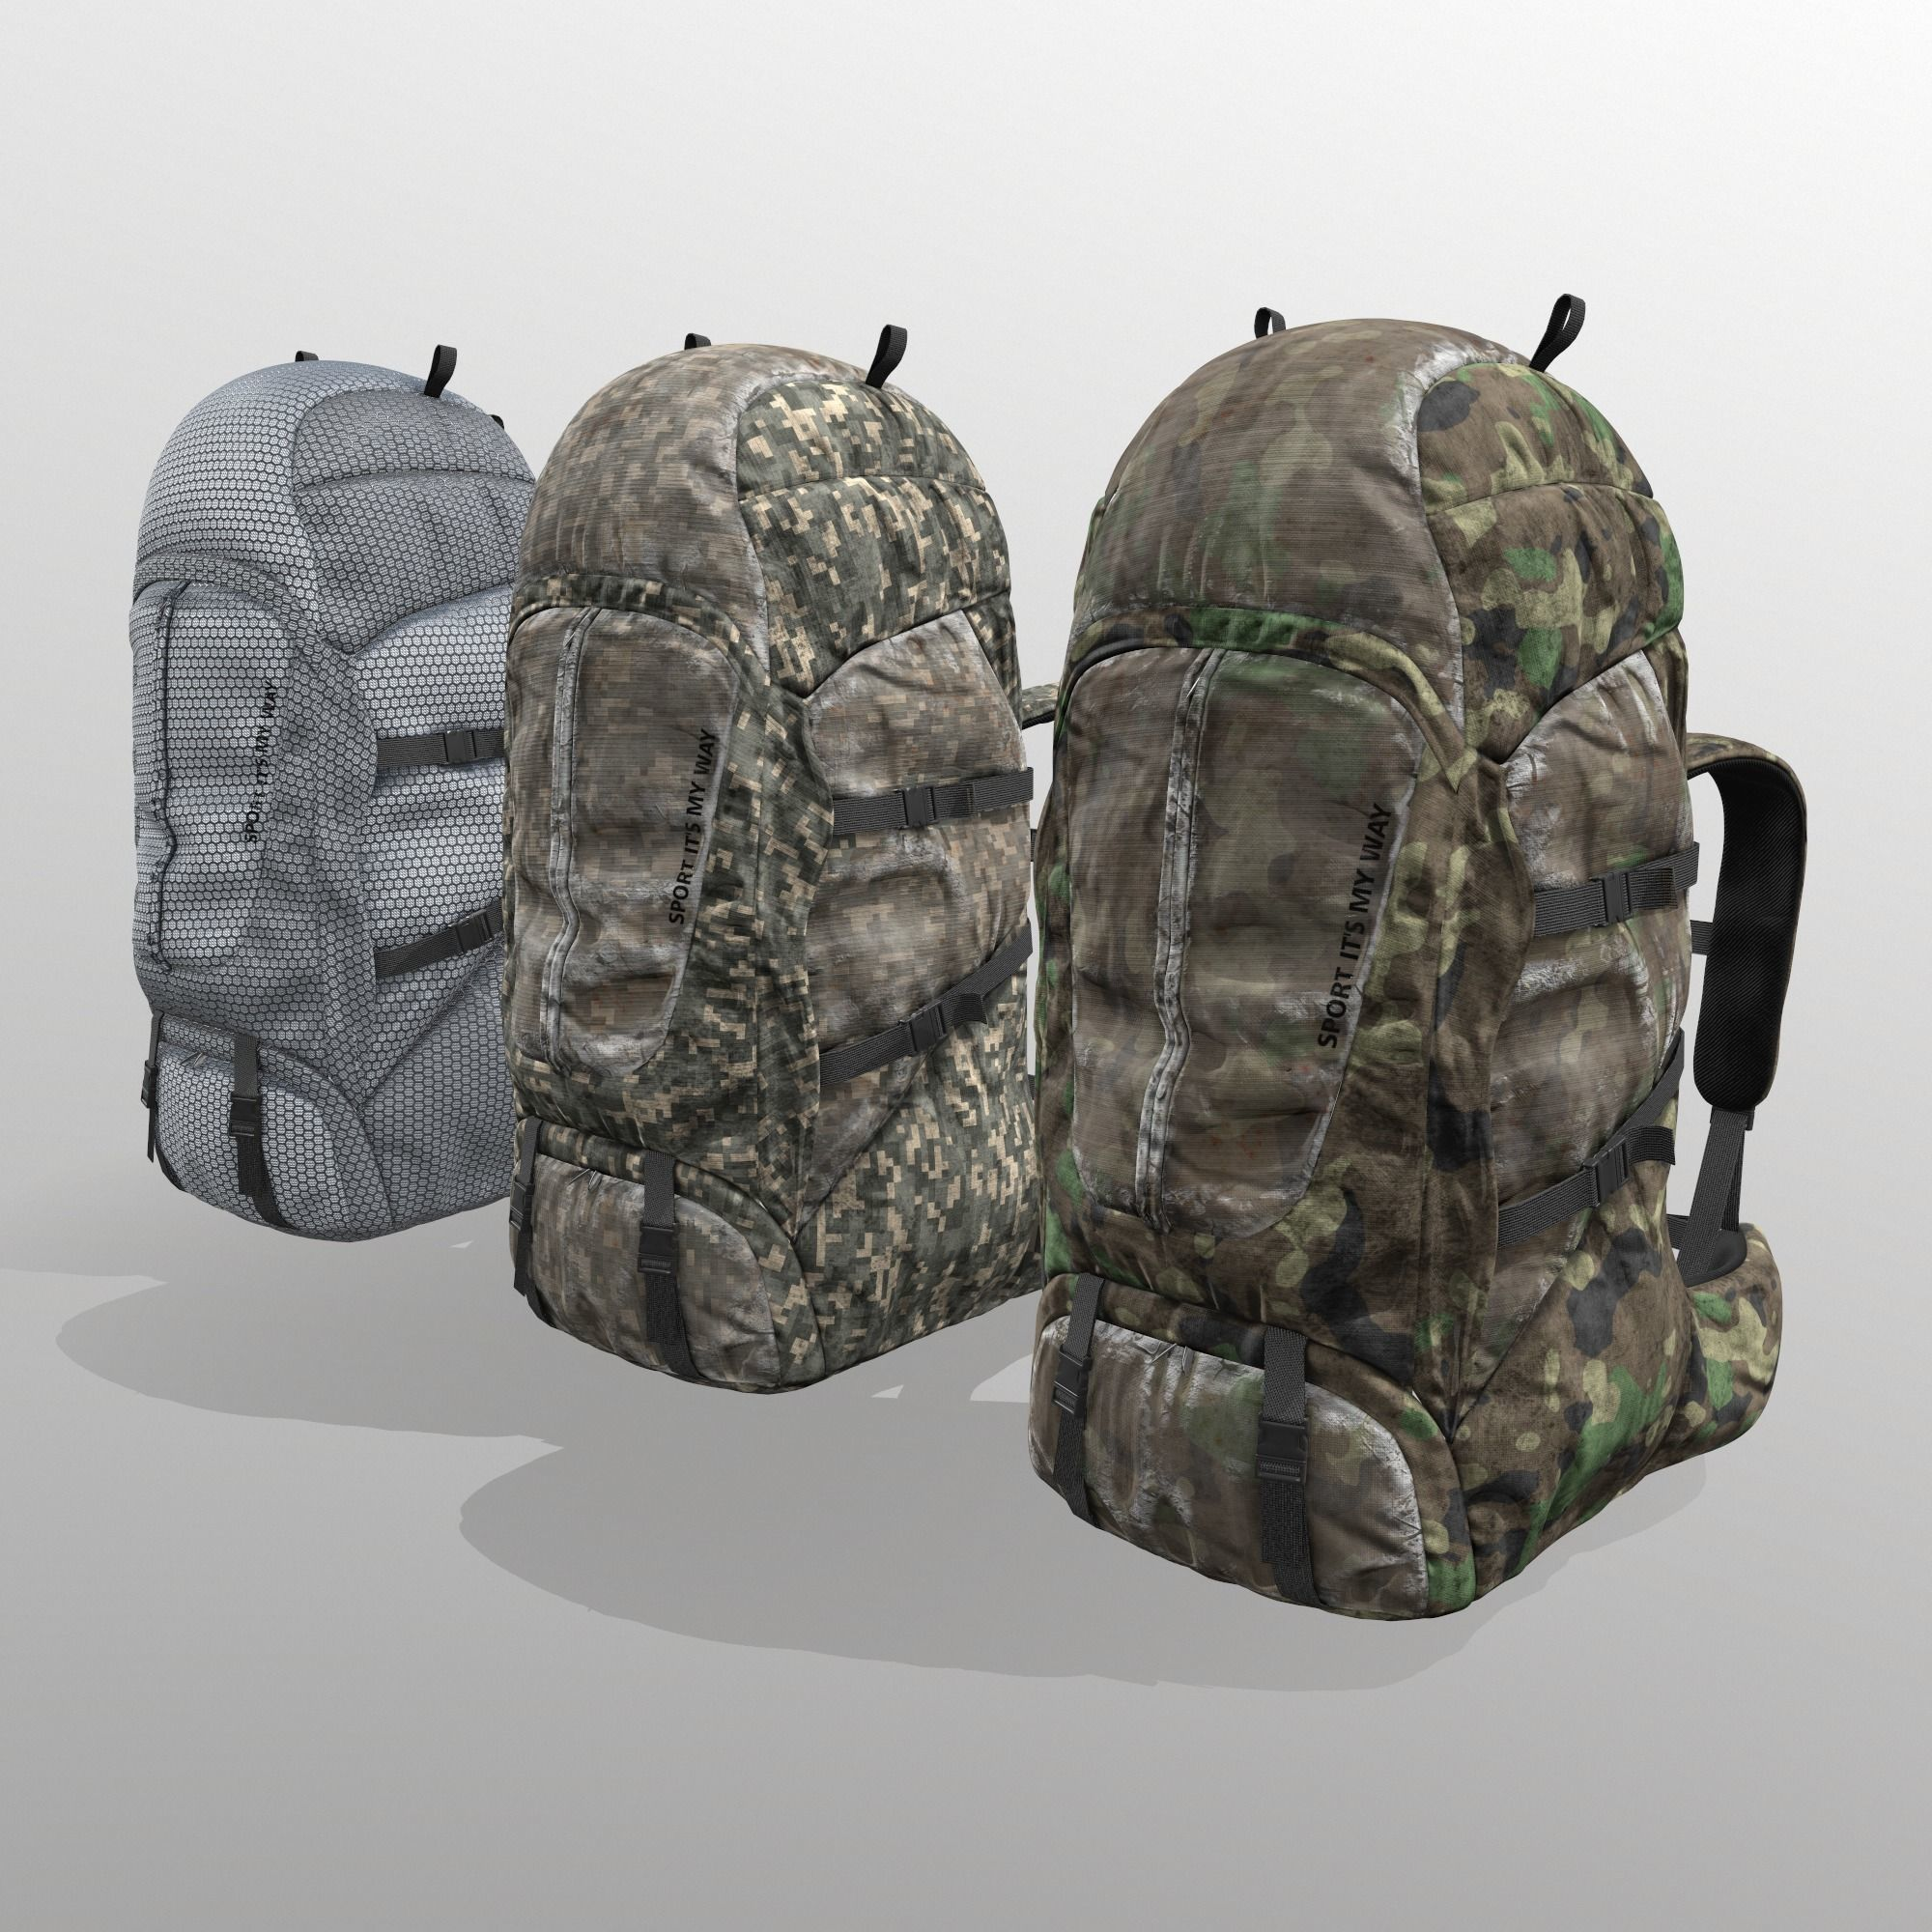 Backpack for hunting hiking traveling